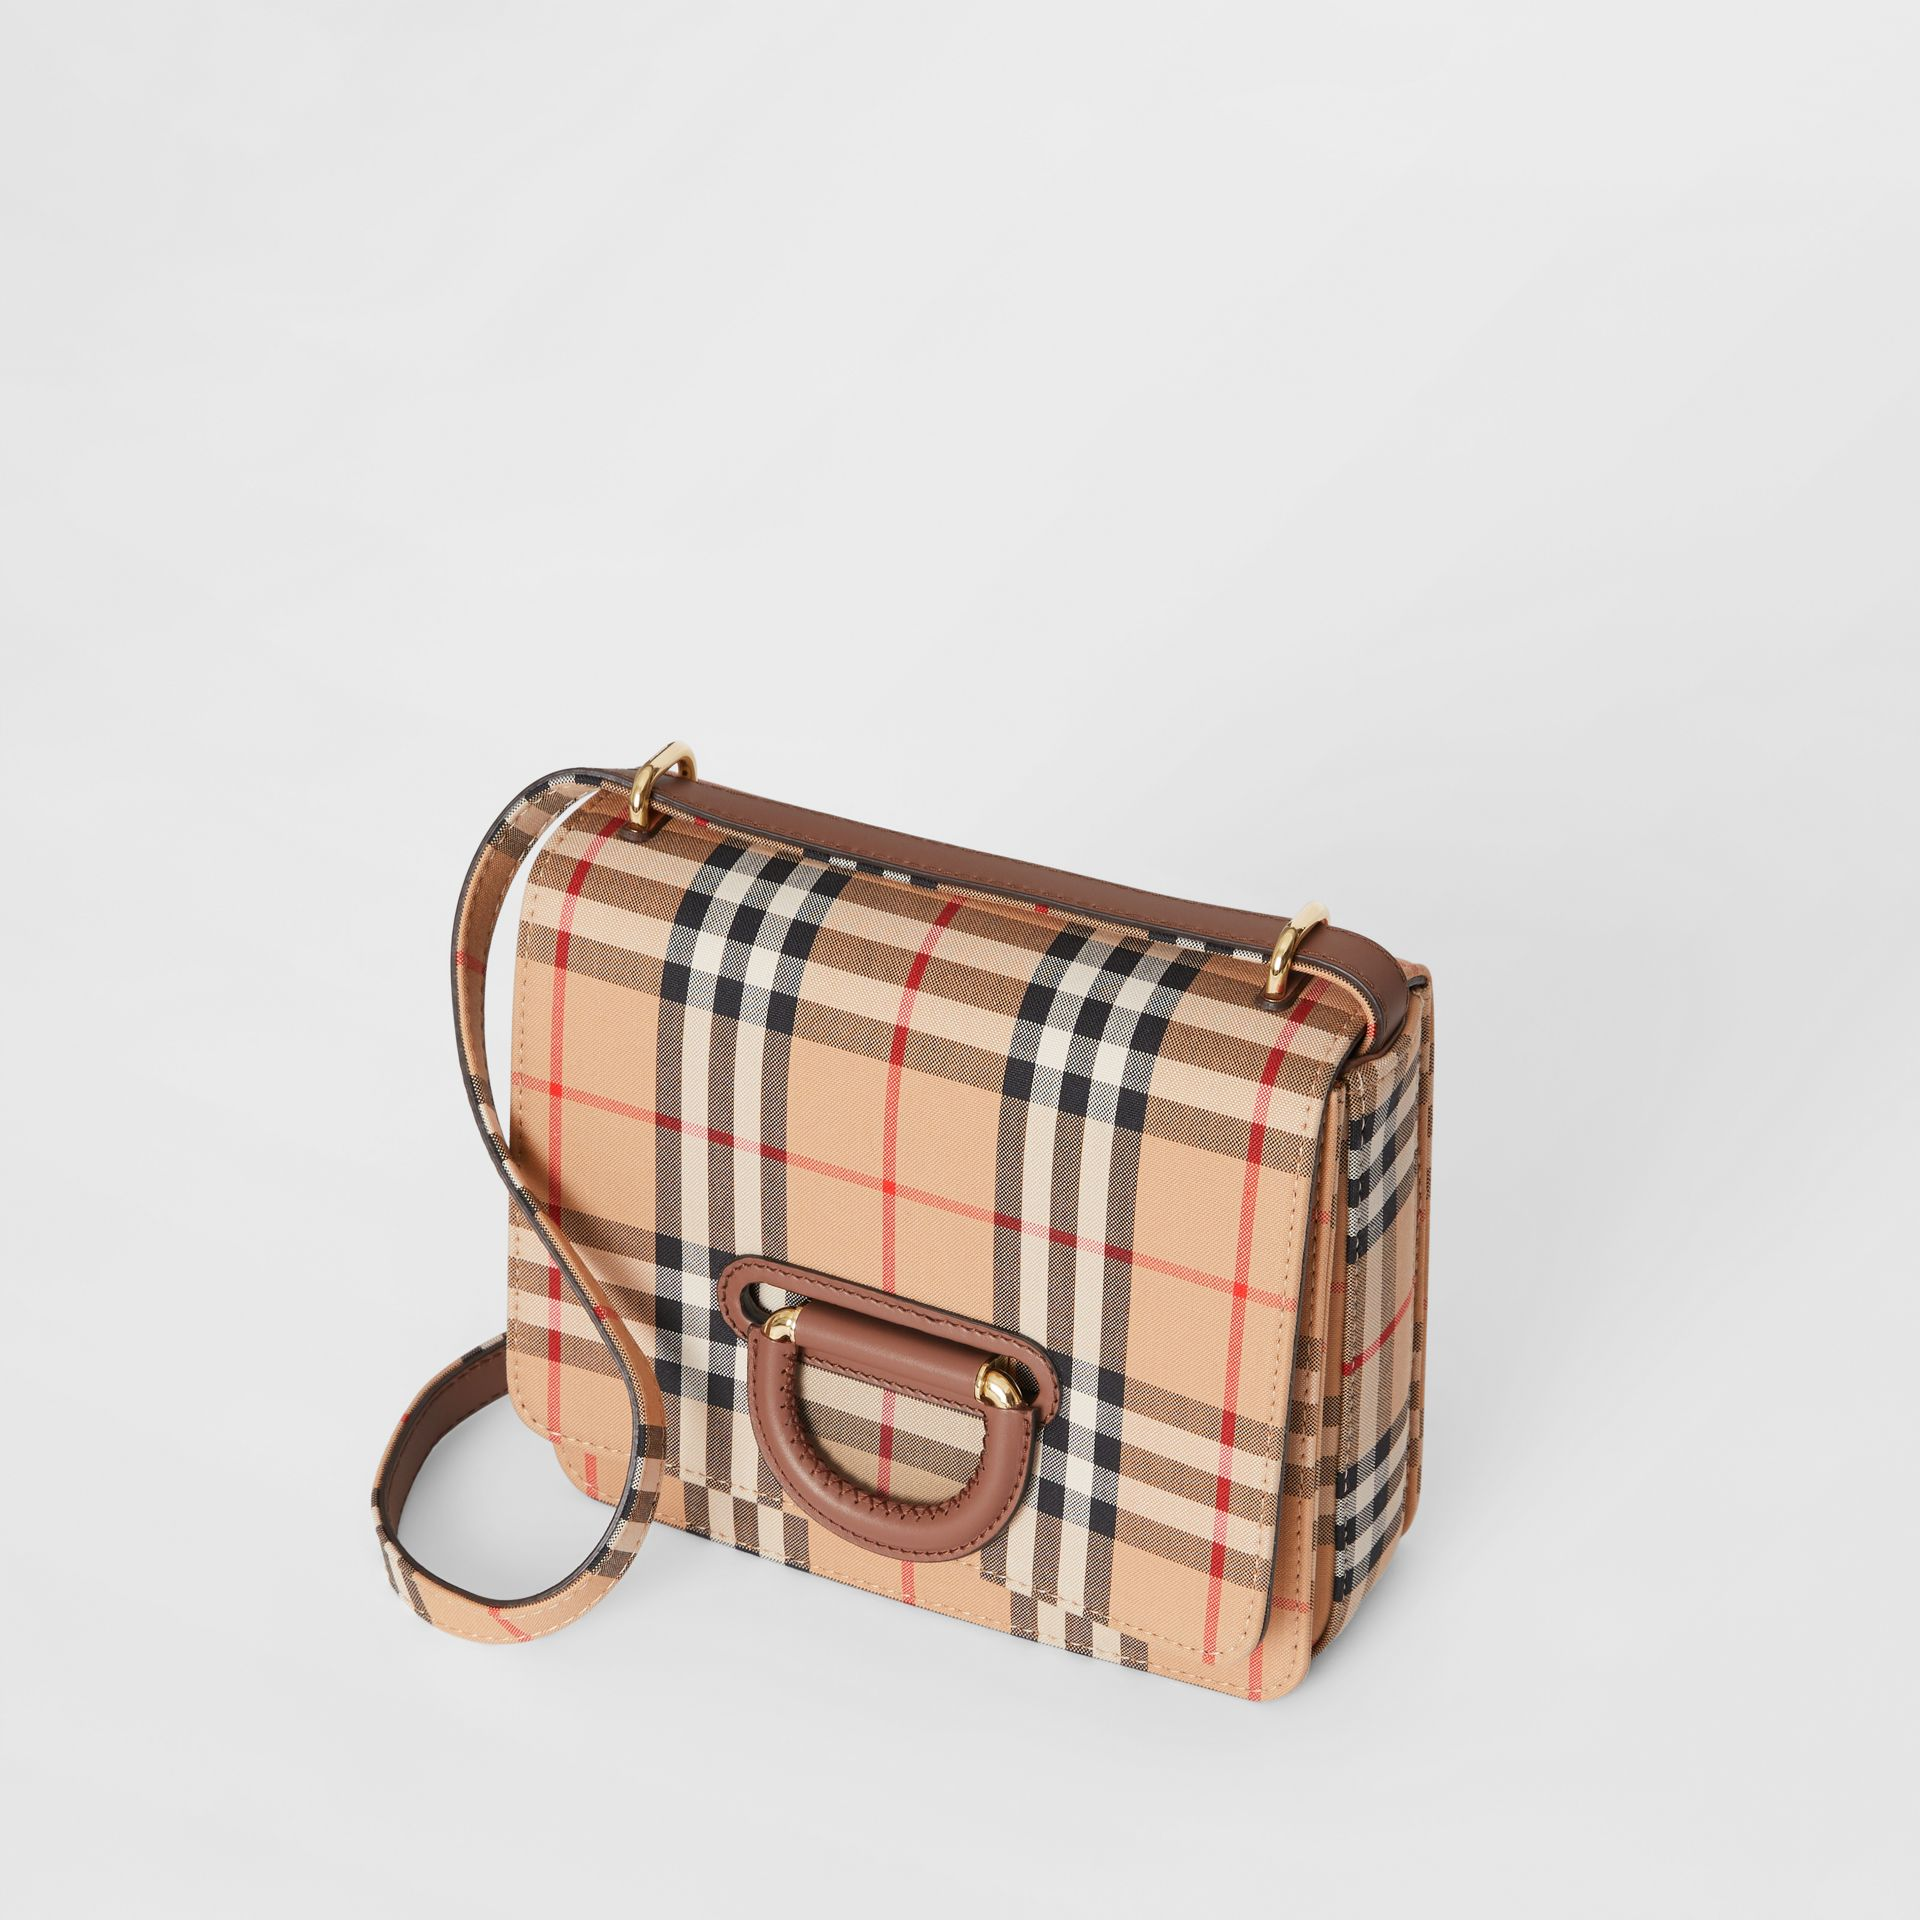 Petit sac The D-ring en coton Vintage check (Beige D'archive) - Femme | Burberry - photo de la galerie 3